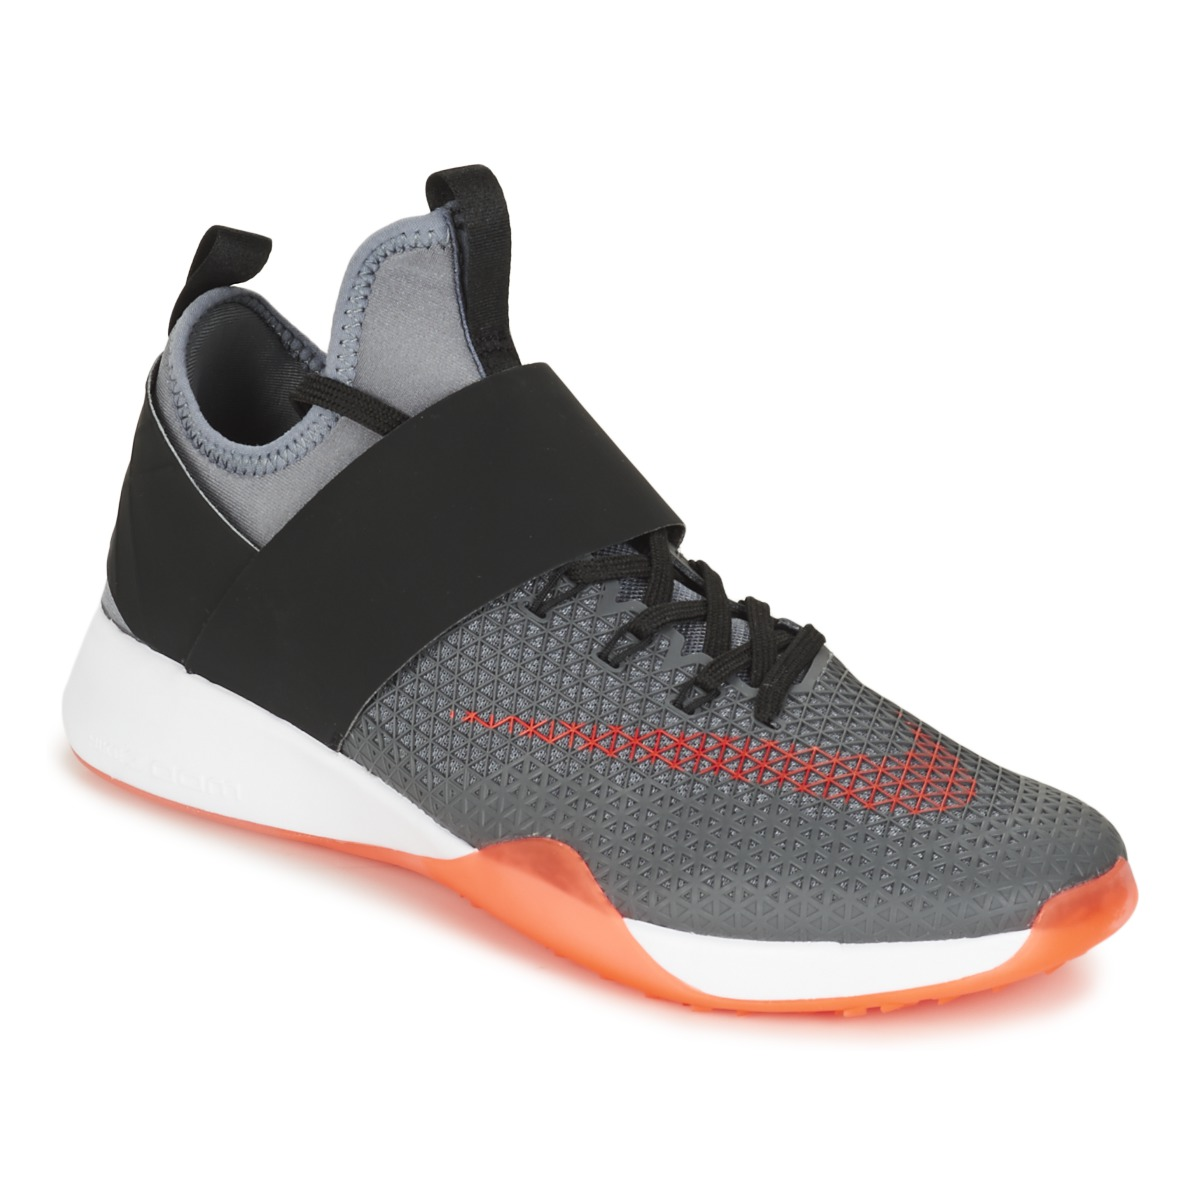 half off a58d4 f991f Chaussures Femme Fitness   Training Nike AIR ZOOM STRONG W Gris   Noir